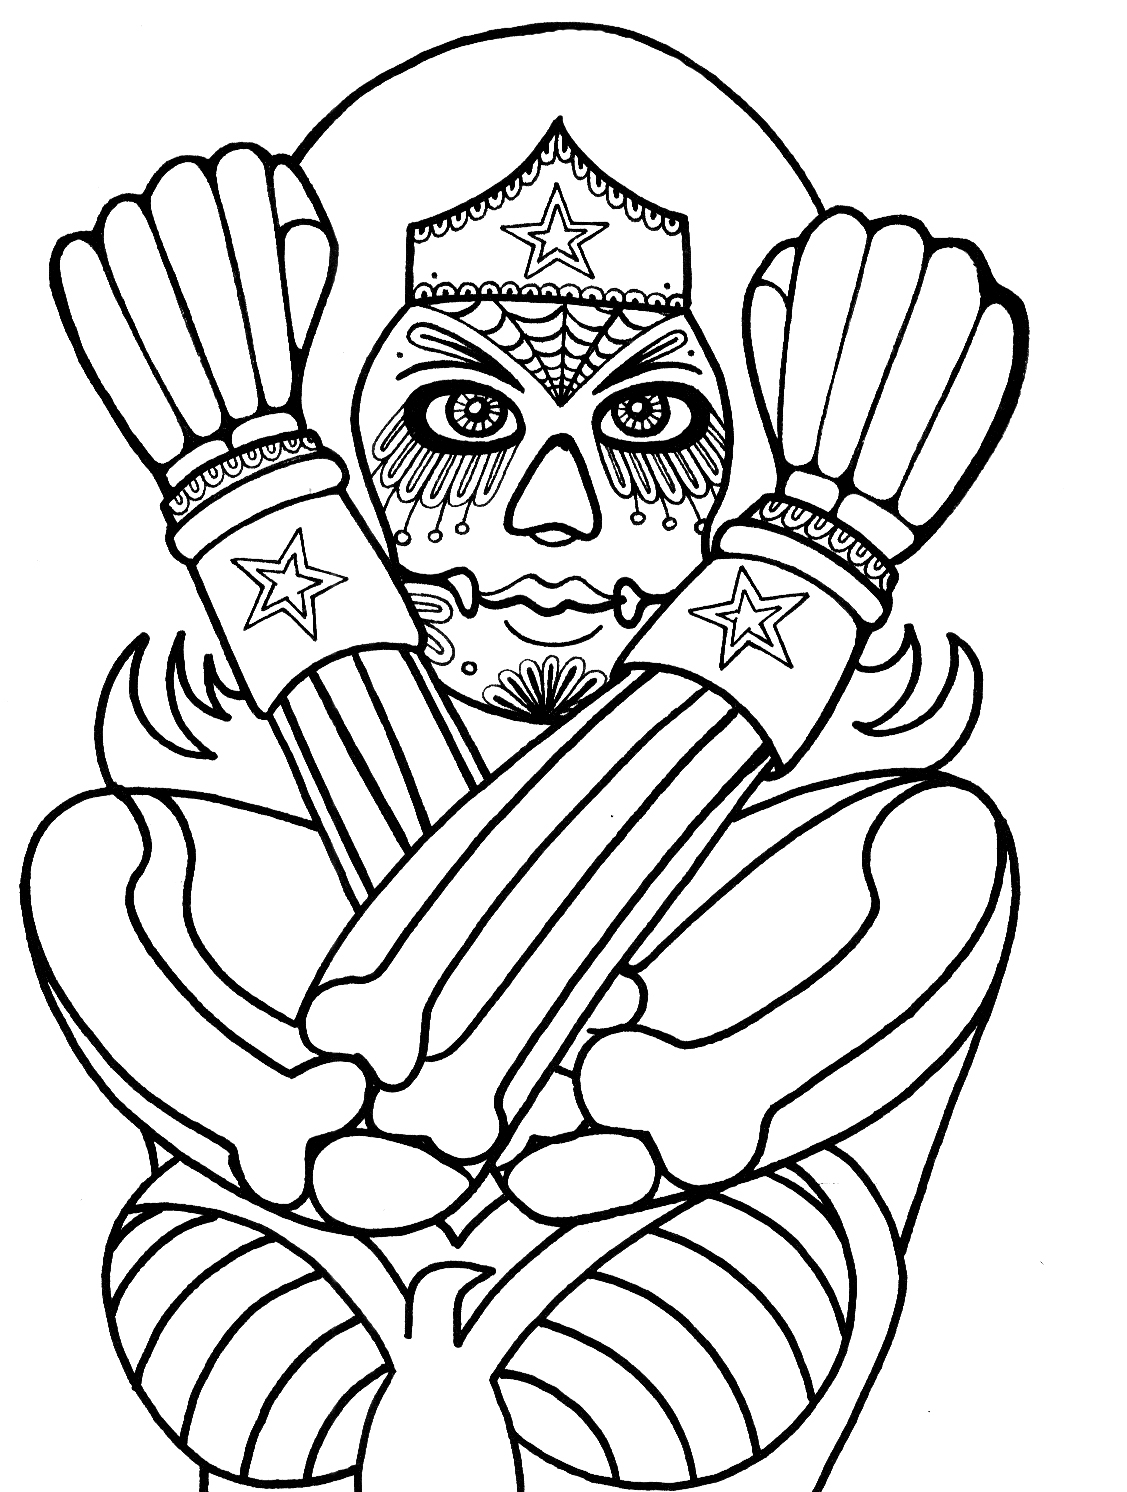 1127x1492 Yucca Flats, N.m. Wenchkin's Coloring Pages